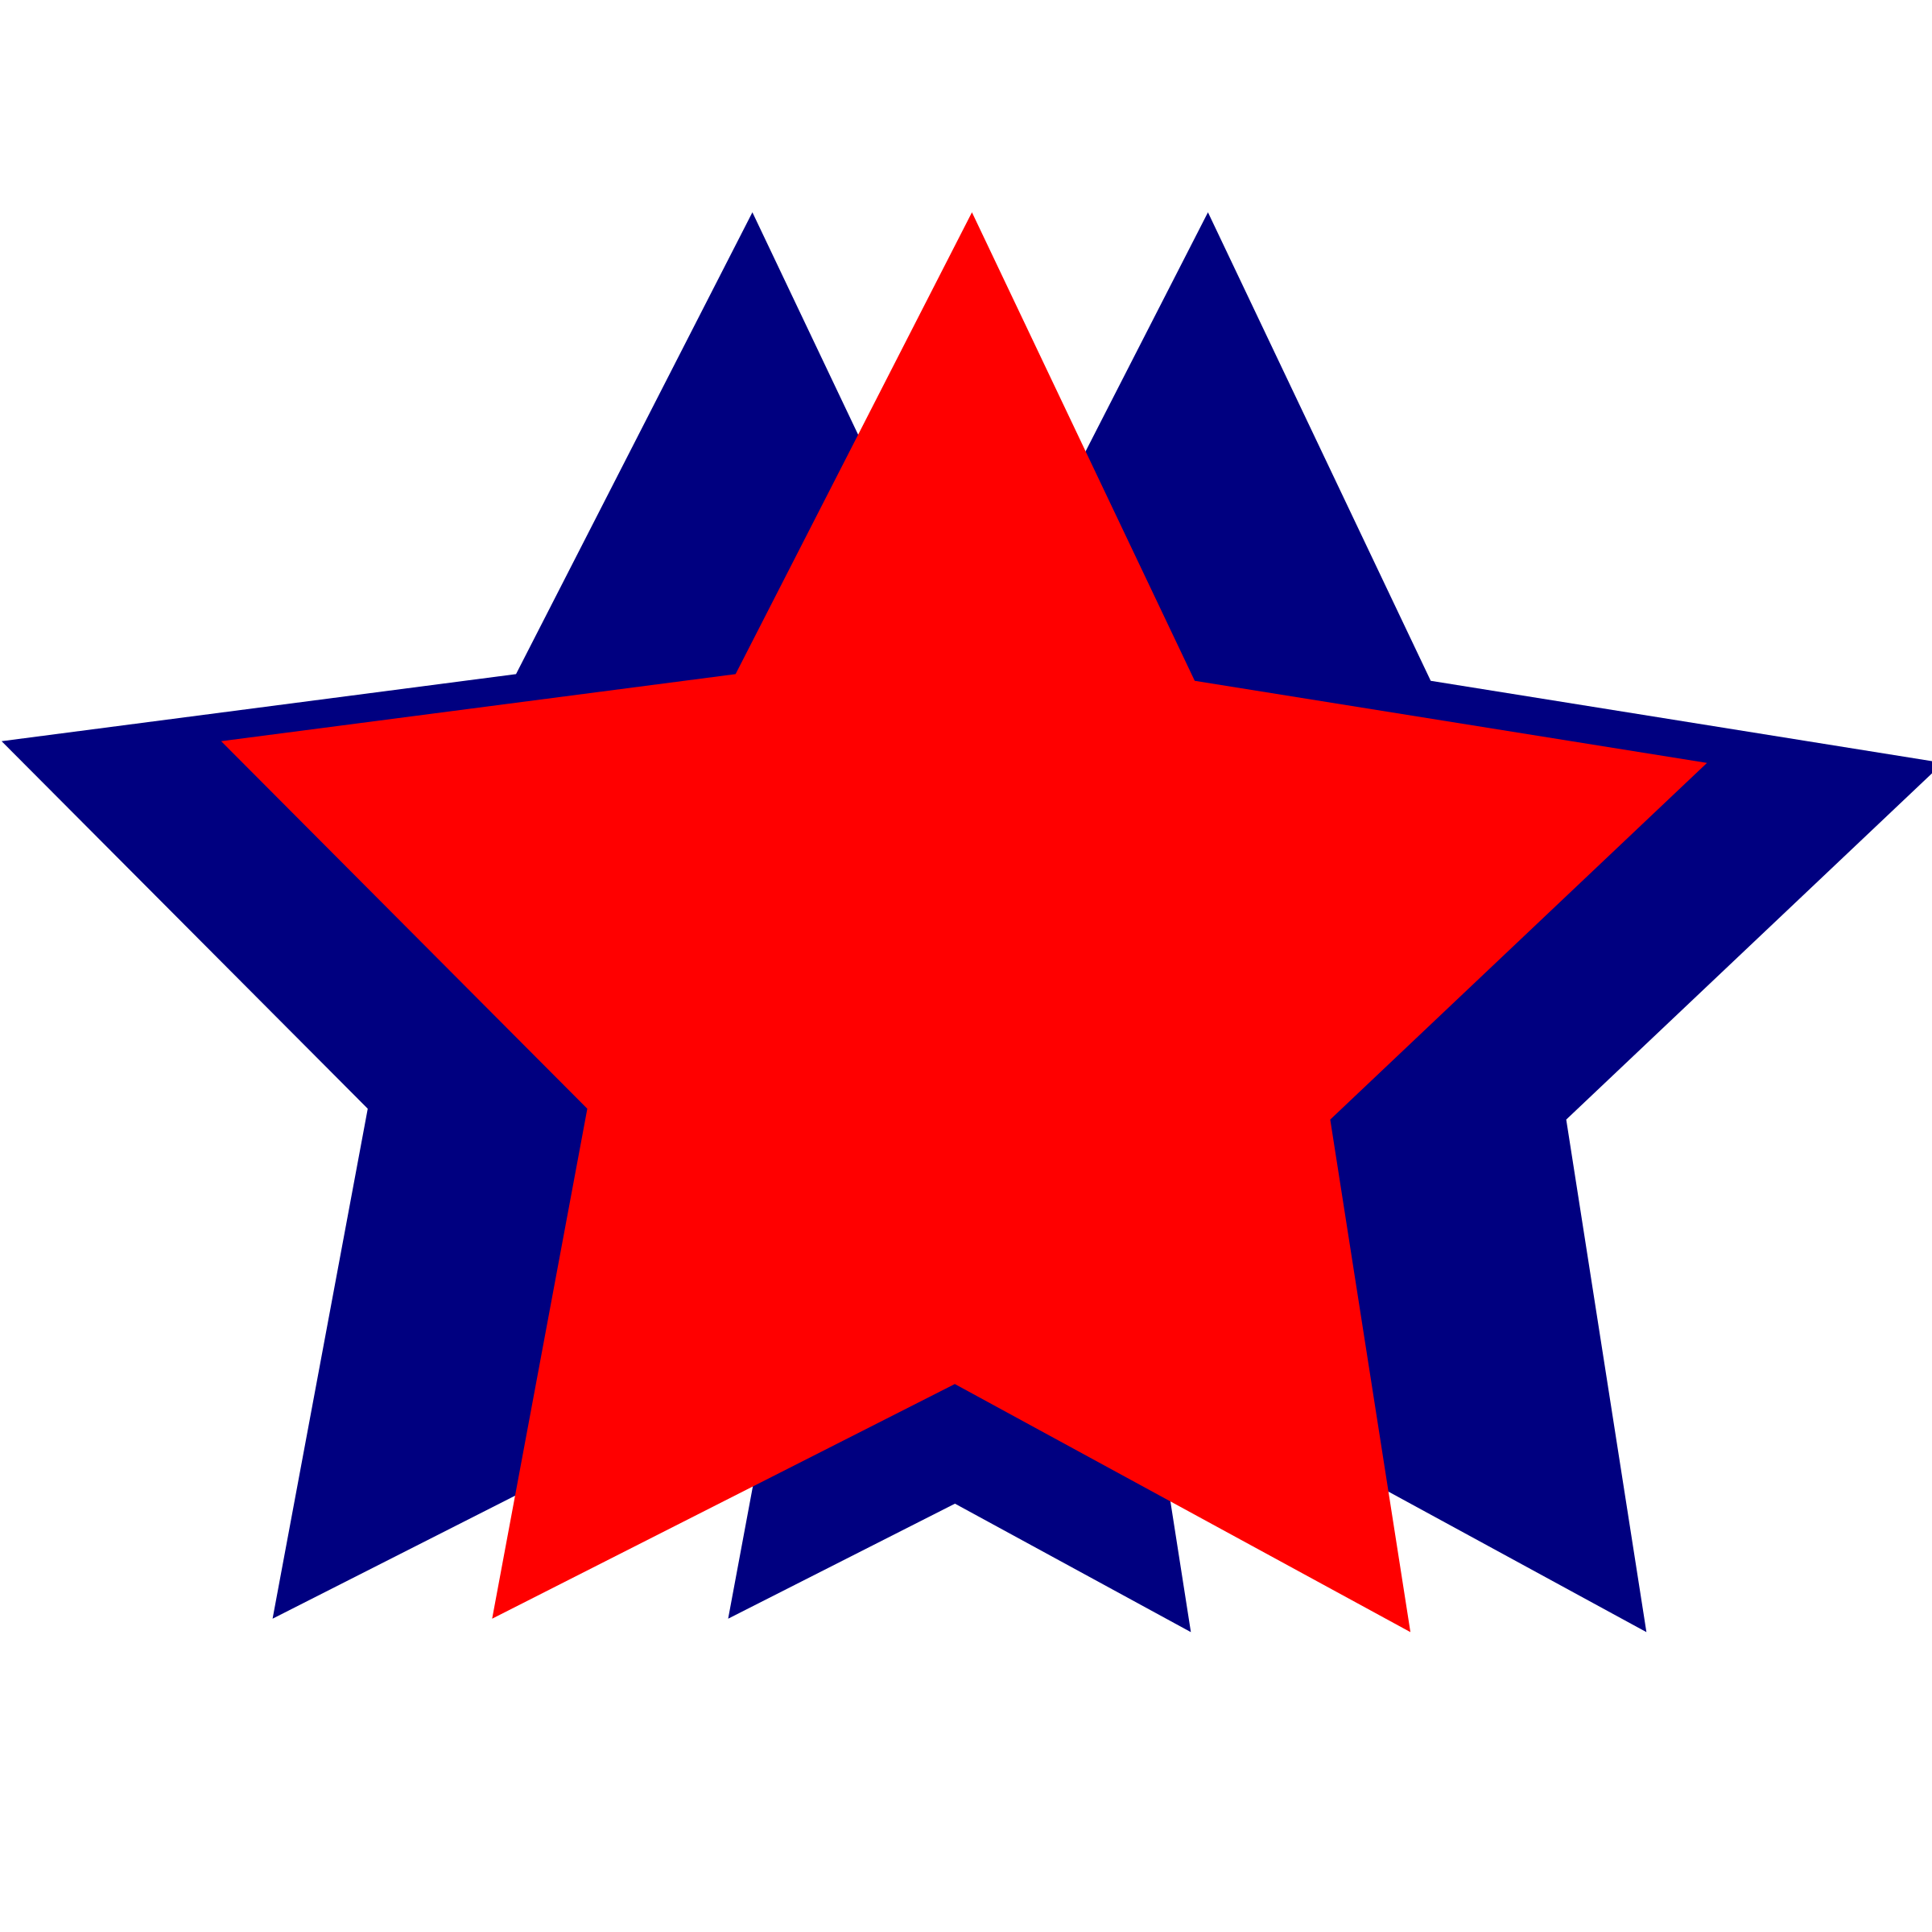 Red white blue png. And stars image